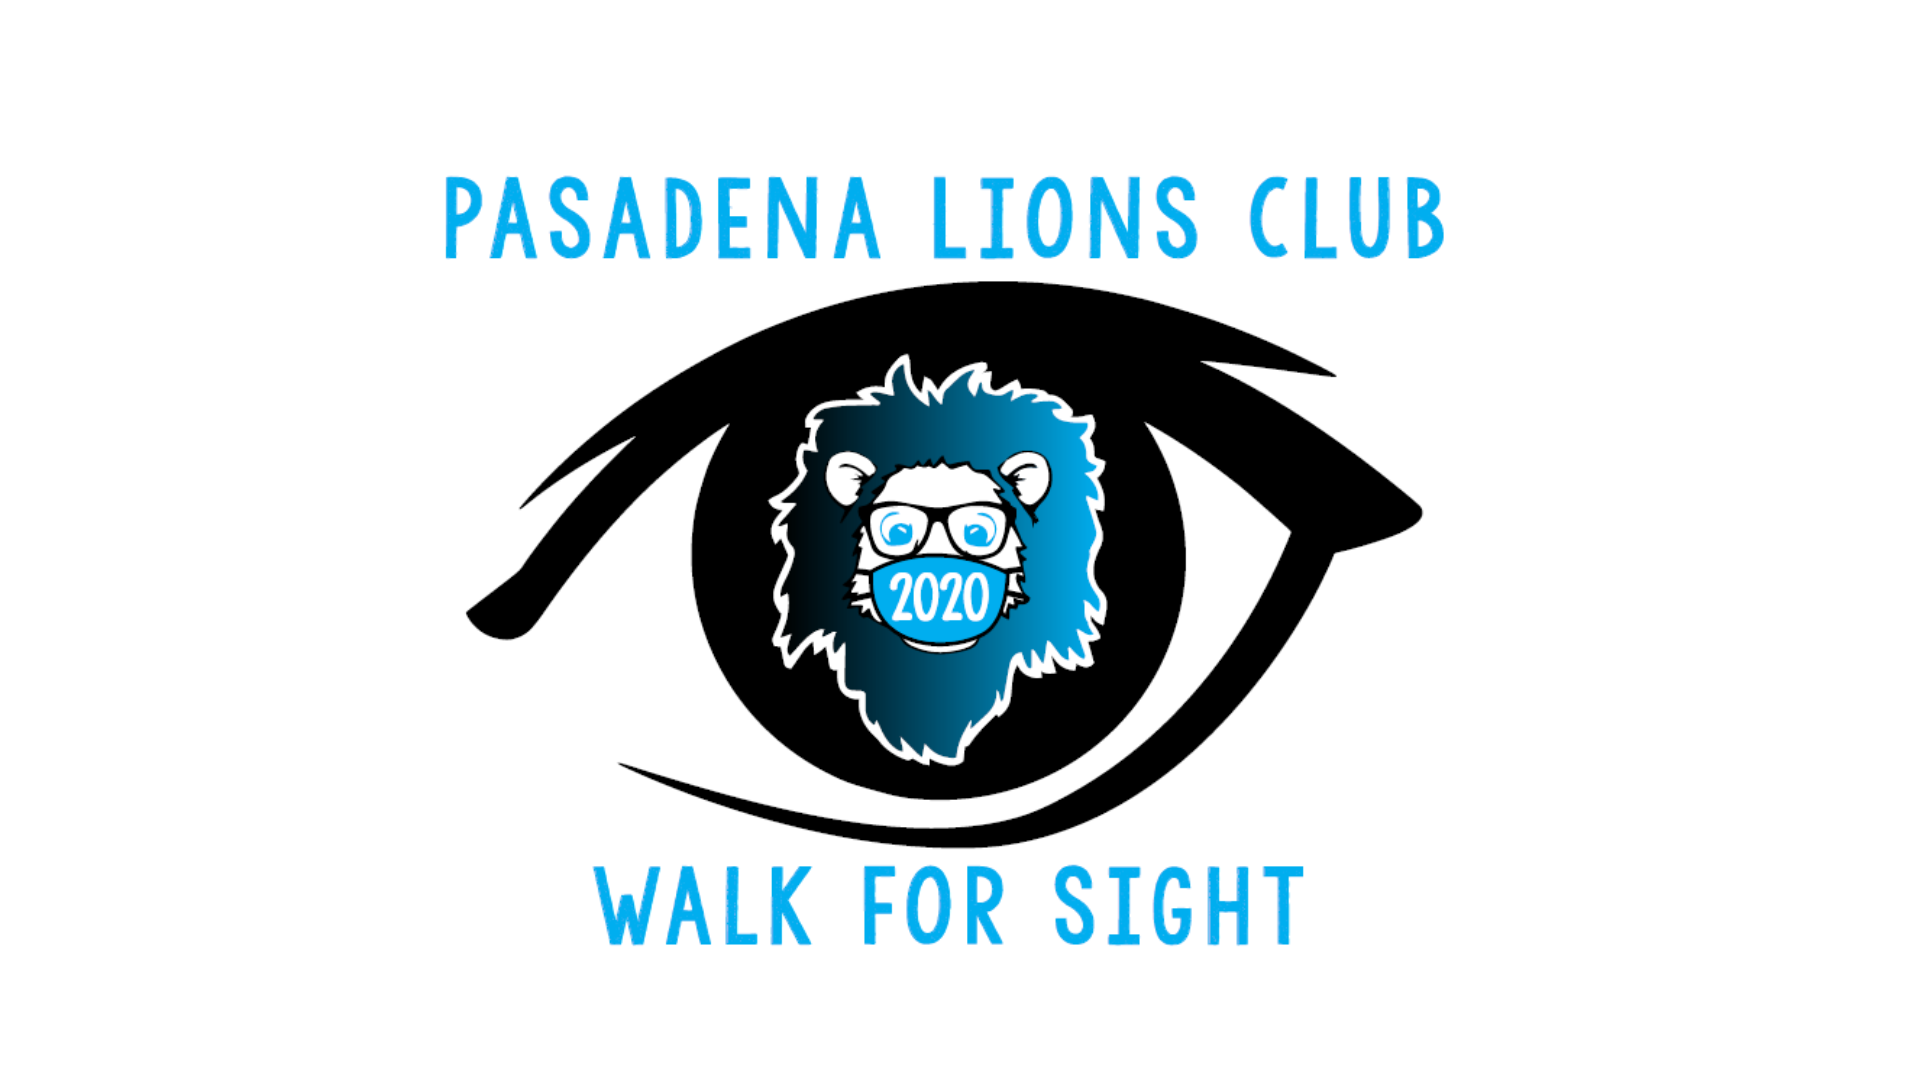 Walk for sight screenshot of logo